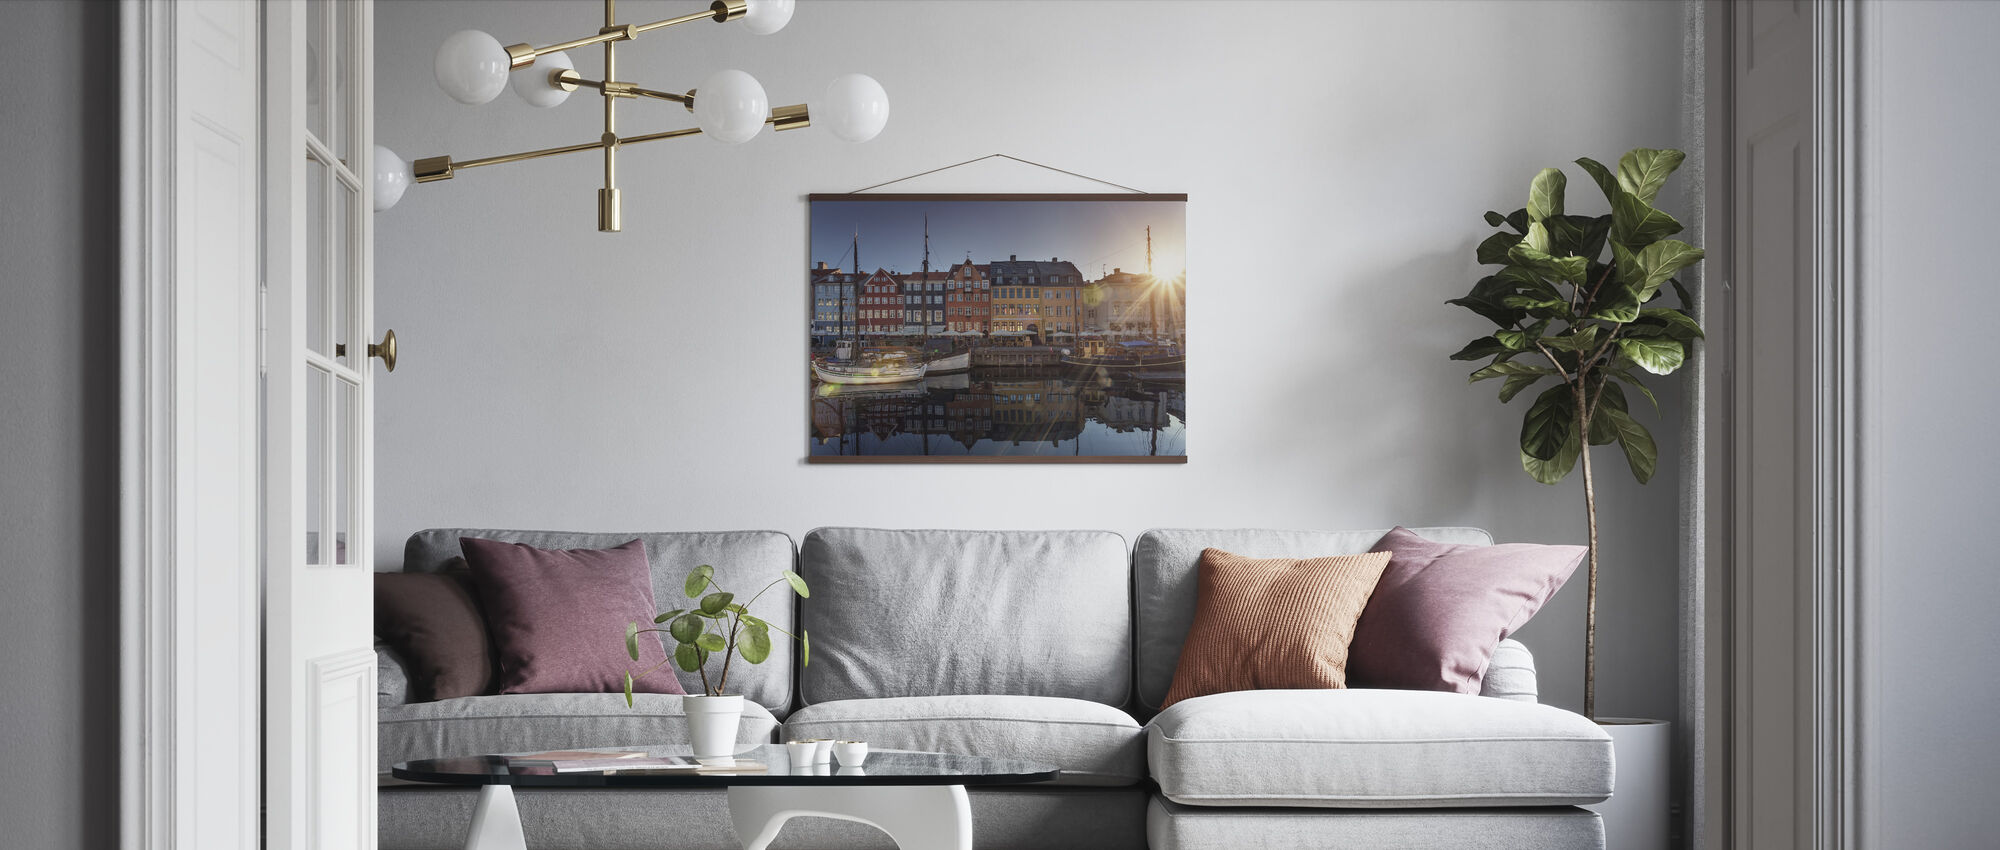 Sunset in Nyhavn, Copenhagen, Denmark - Poster - Living Room